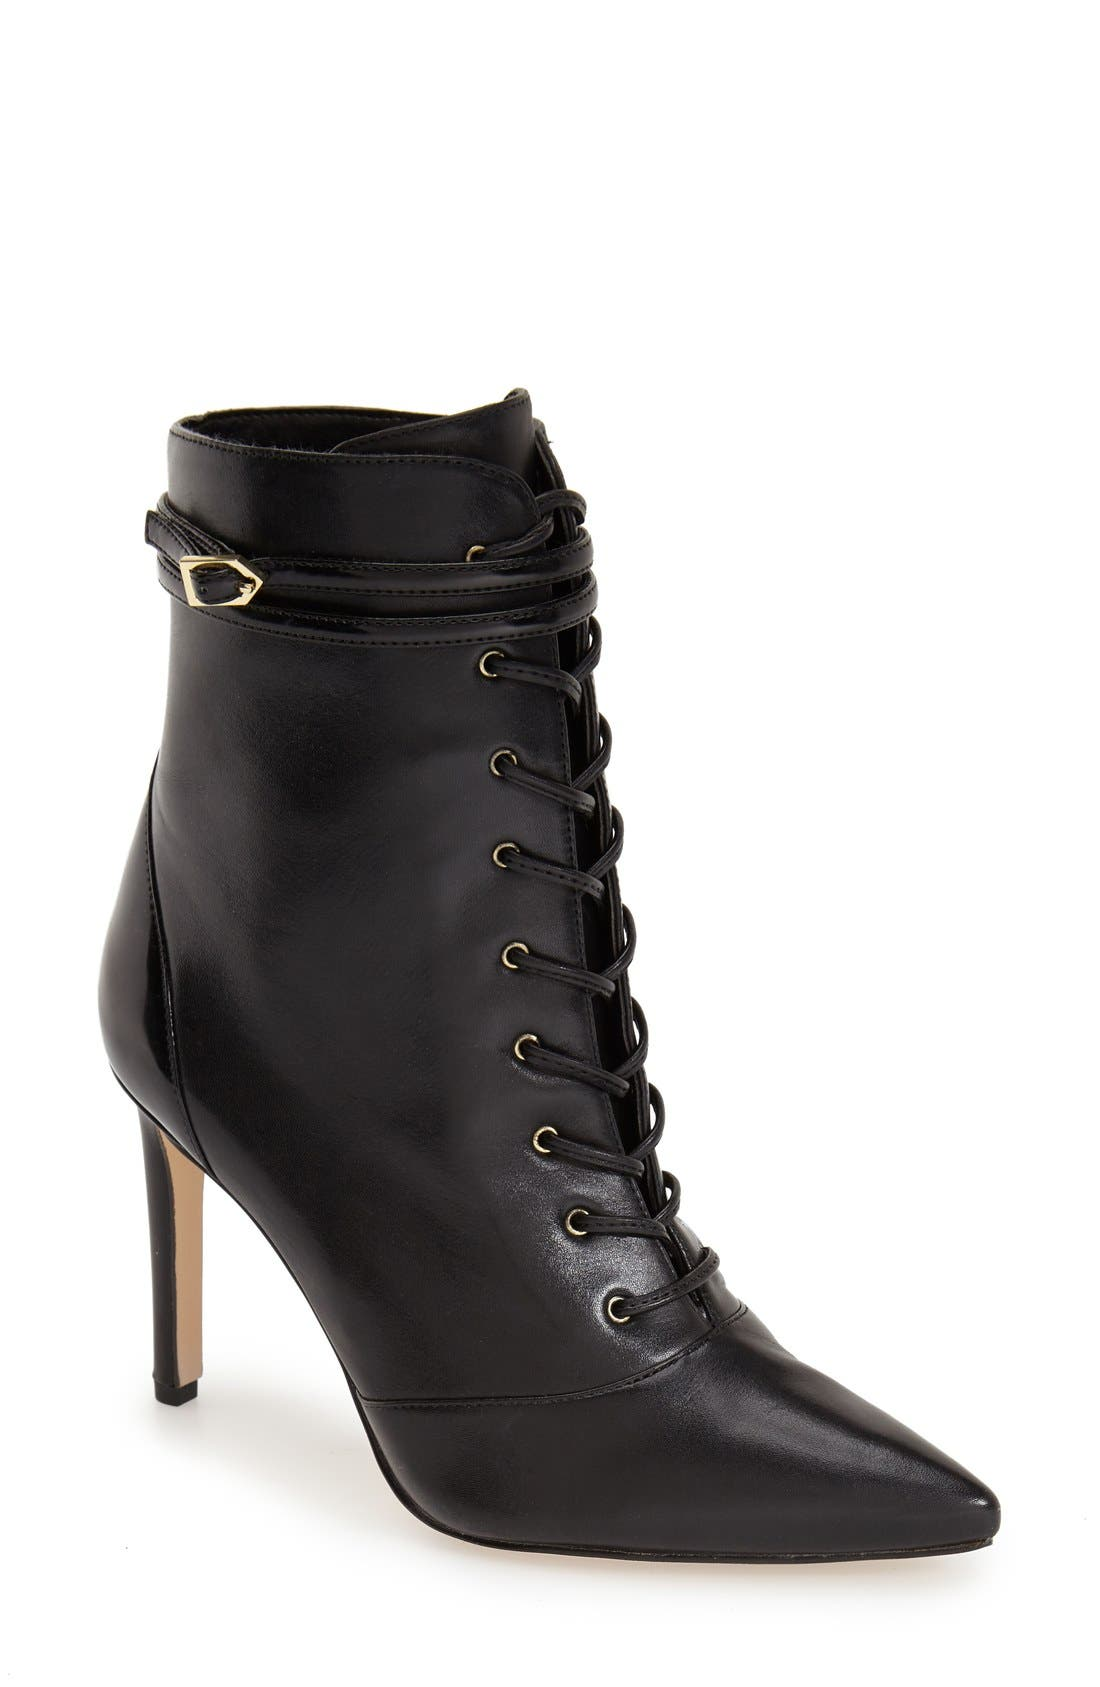 Alternate Image 1 Selected - Sam Edelman'Bryton' Pointy Toe Lace Up Bootie(Women)